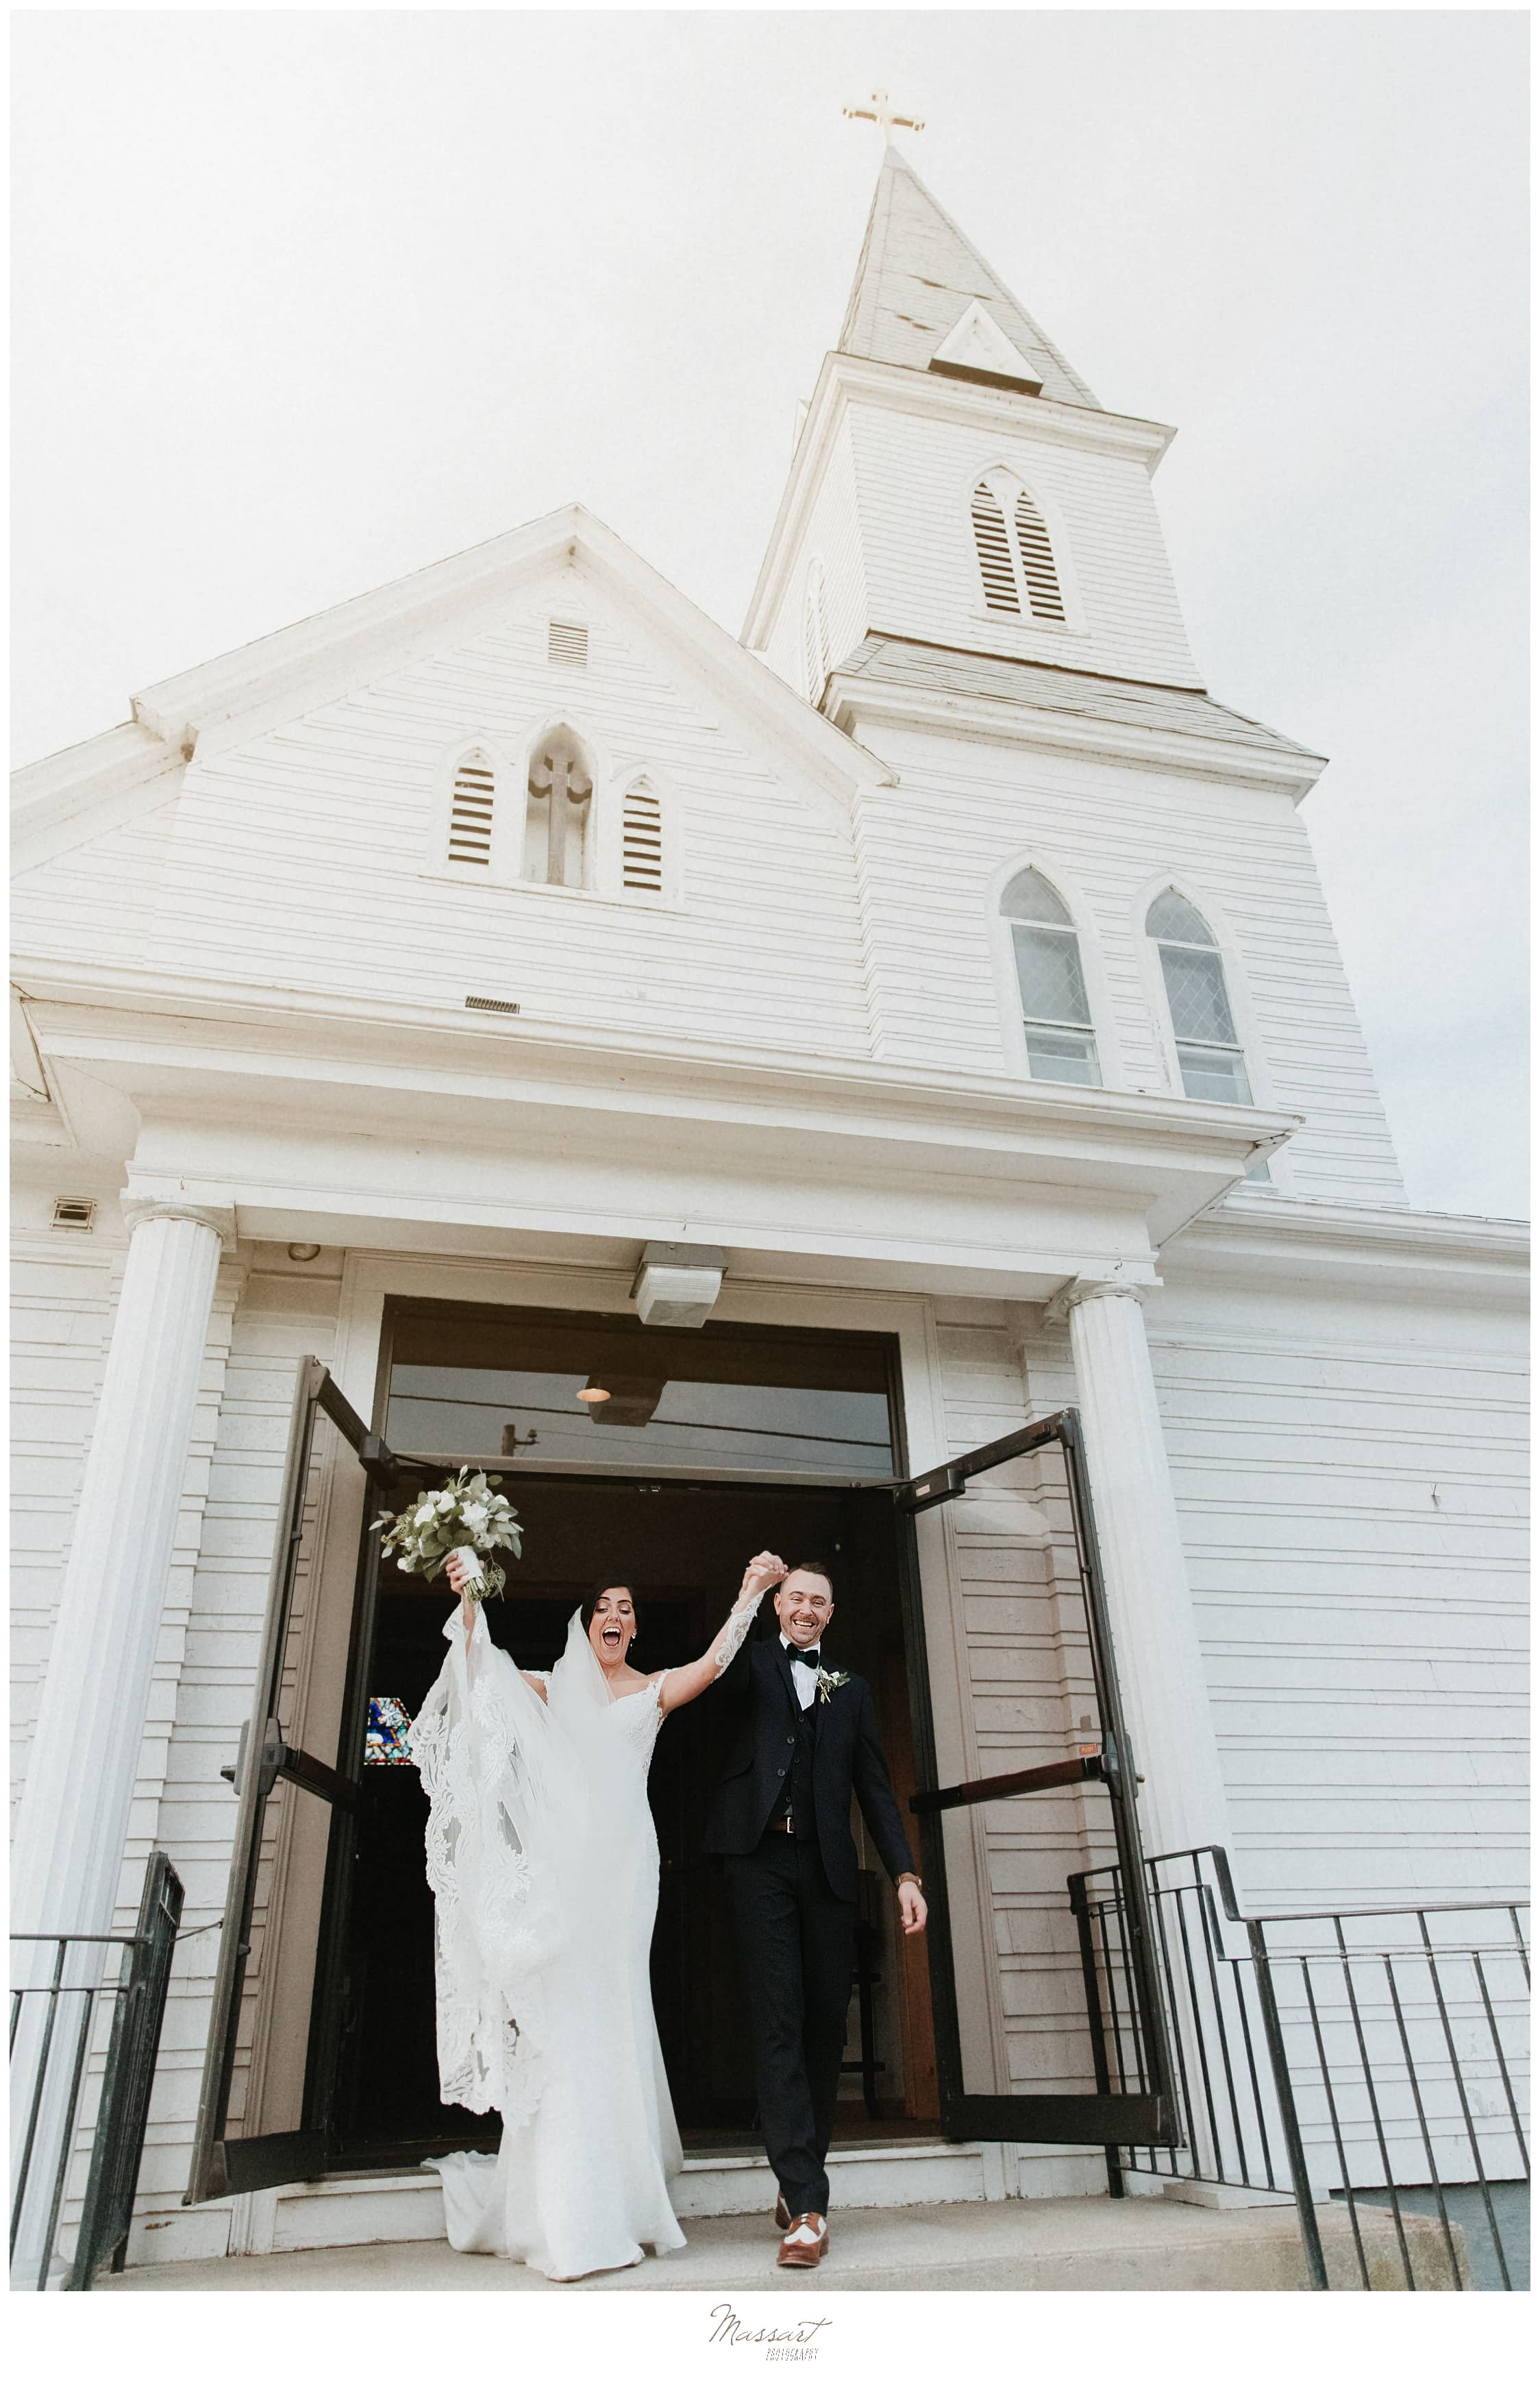 Massart Photography captures bride and groom leaving church in MA